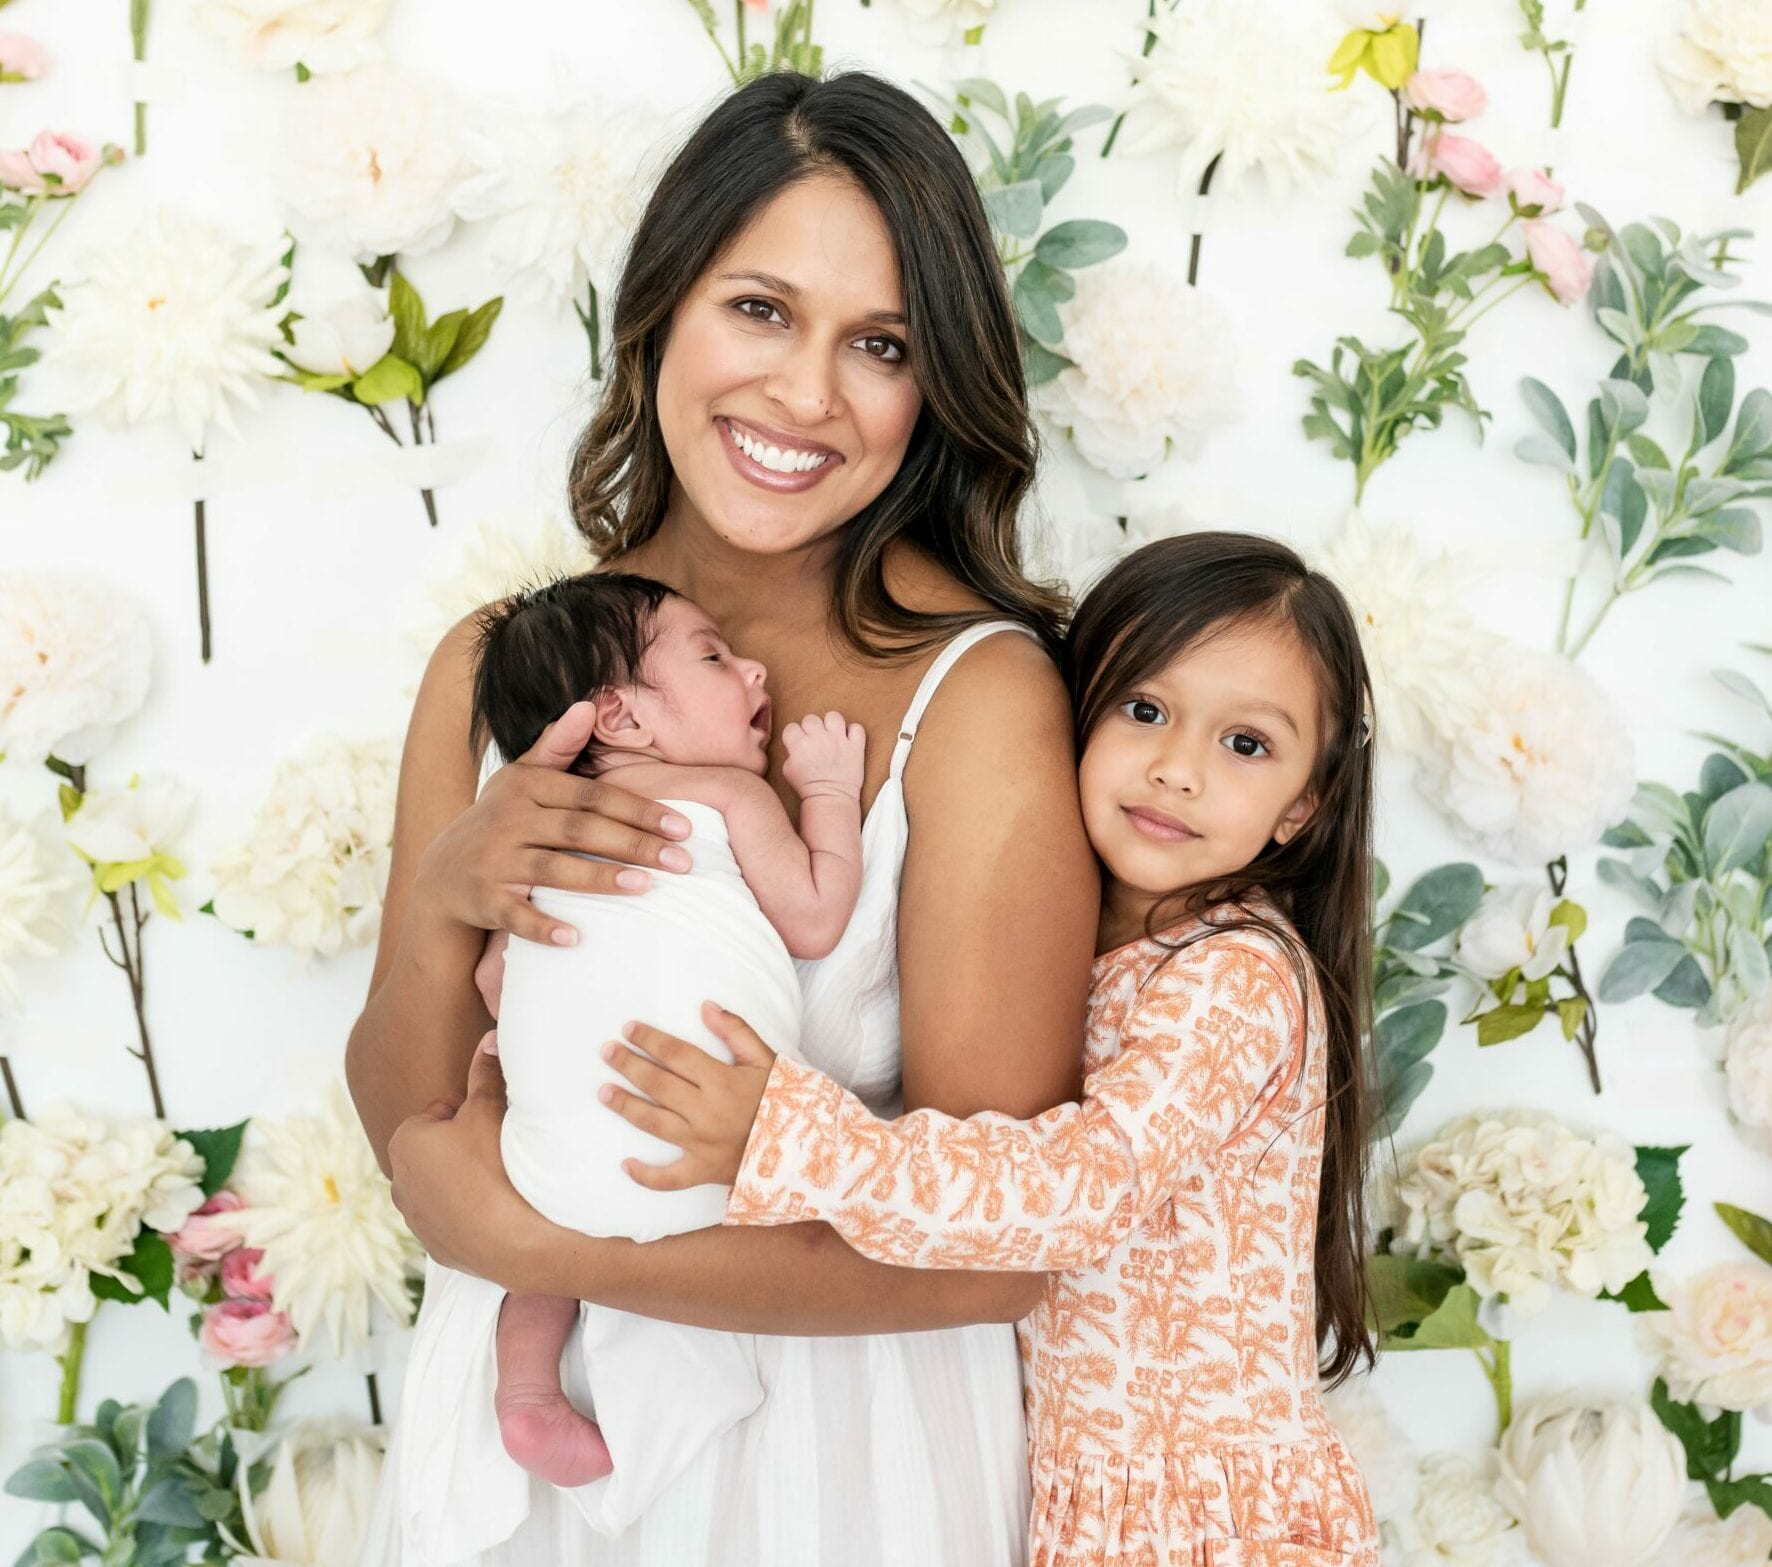 Dr. Panchal with her daughters